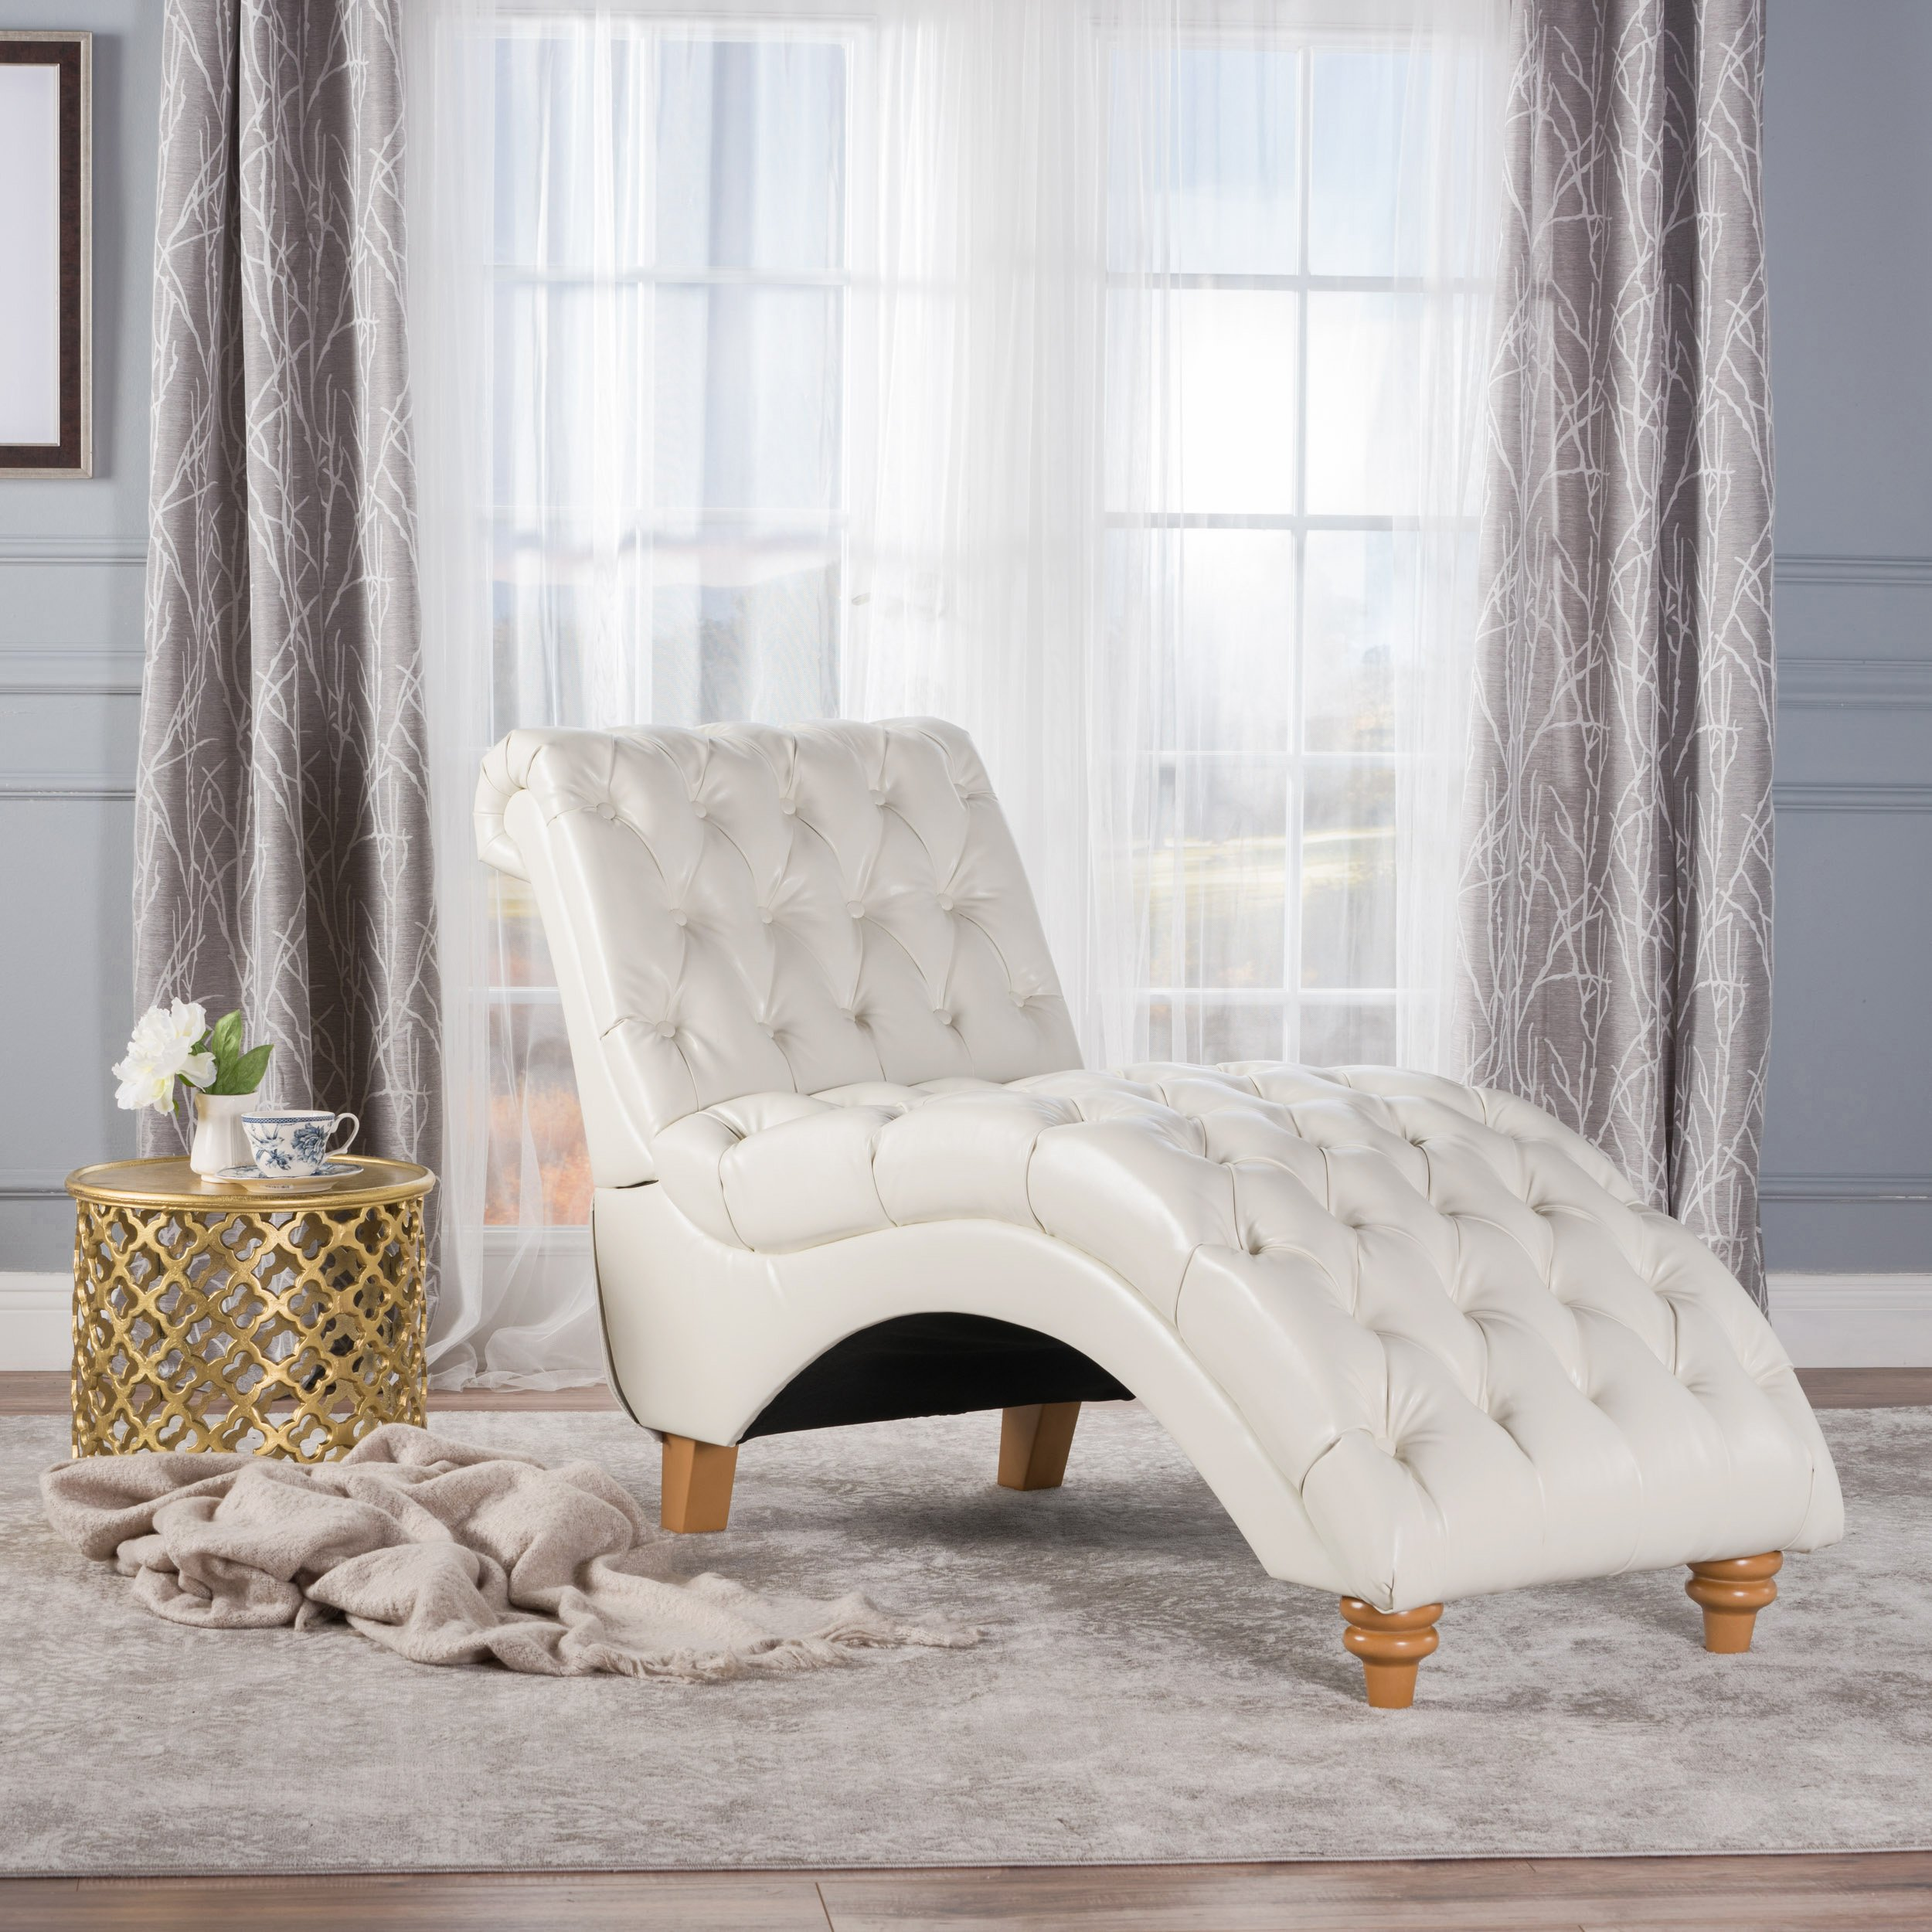 White leather chaise with a gold side table